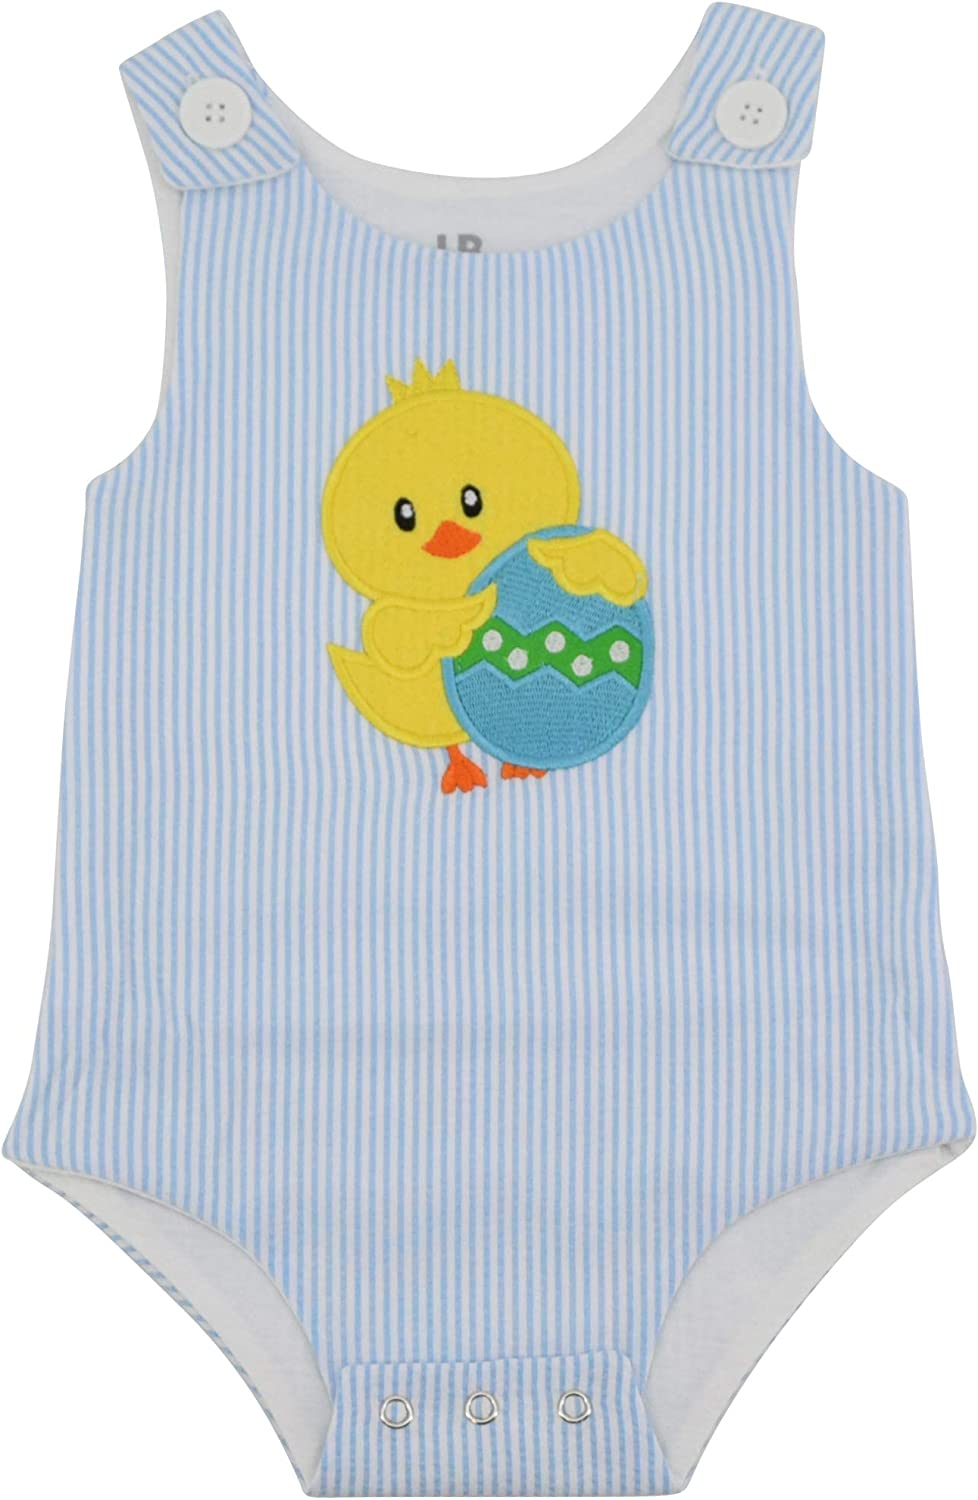 Unique Baby Boys Easter Chick Jon Jon Outfit